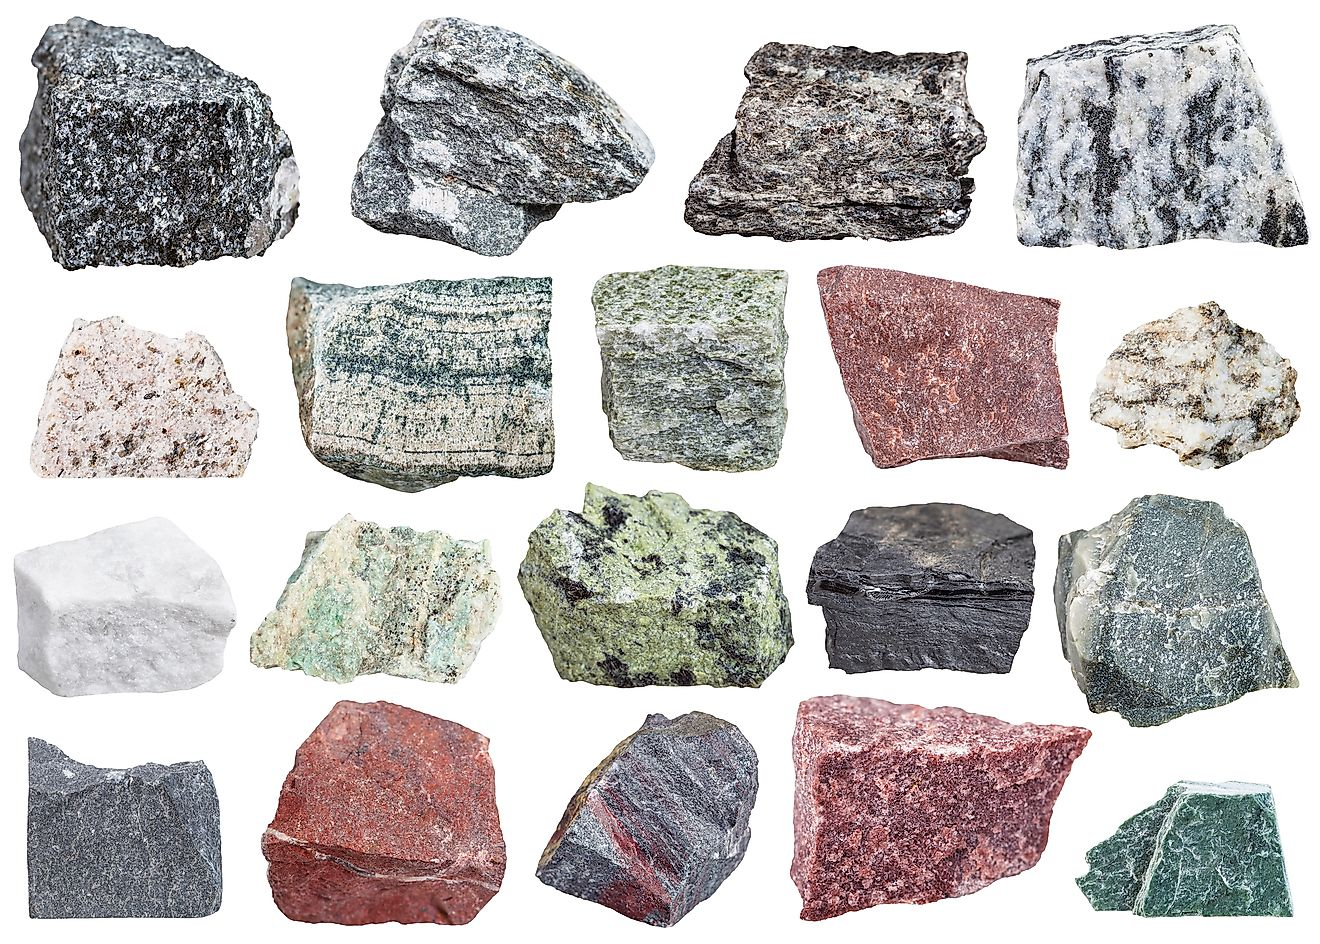 How Are Metamorphic Rocks Formed?